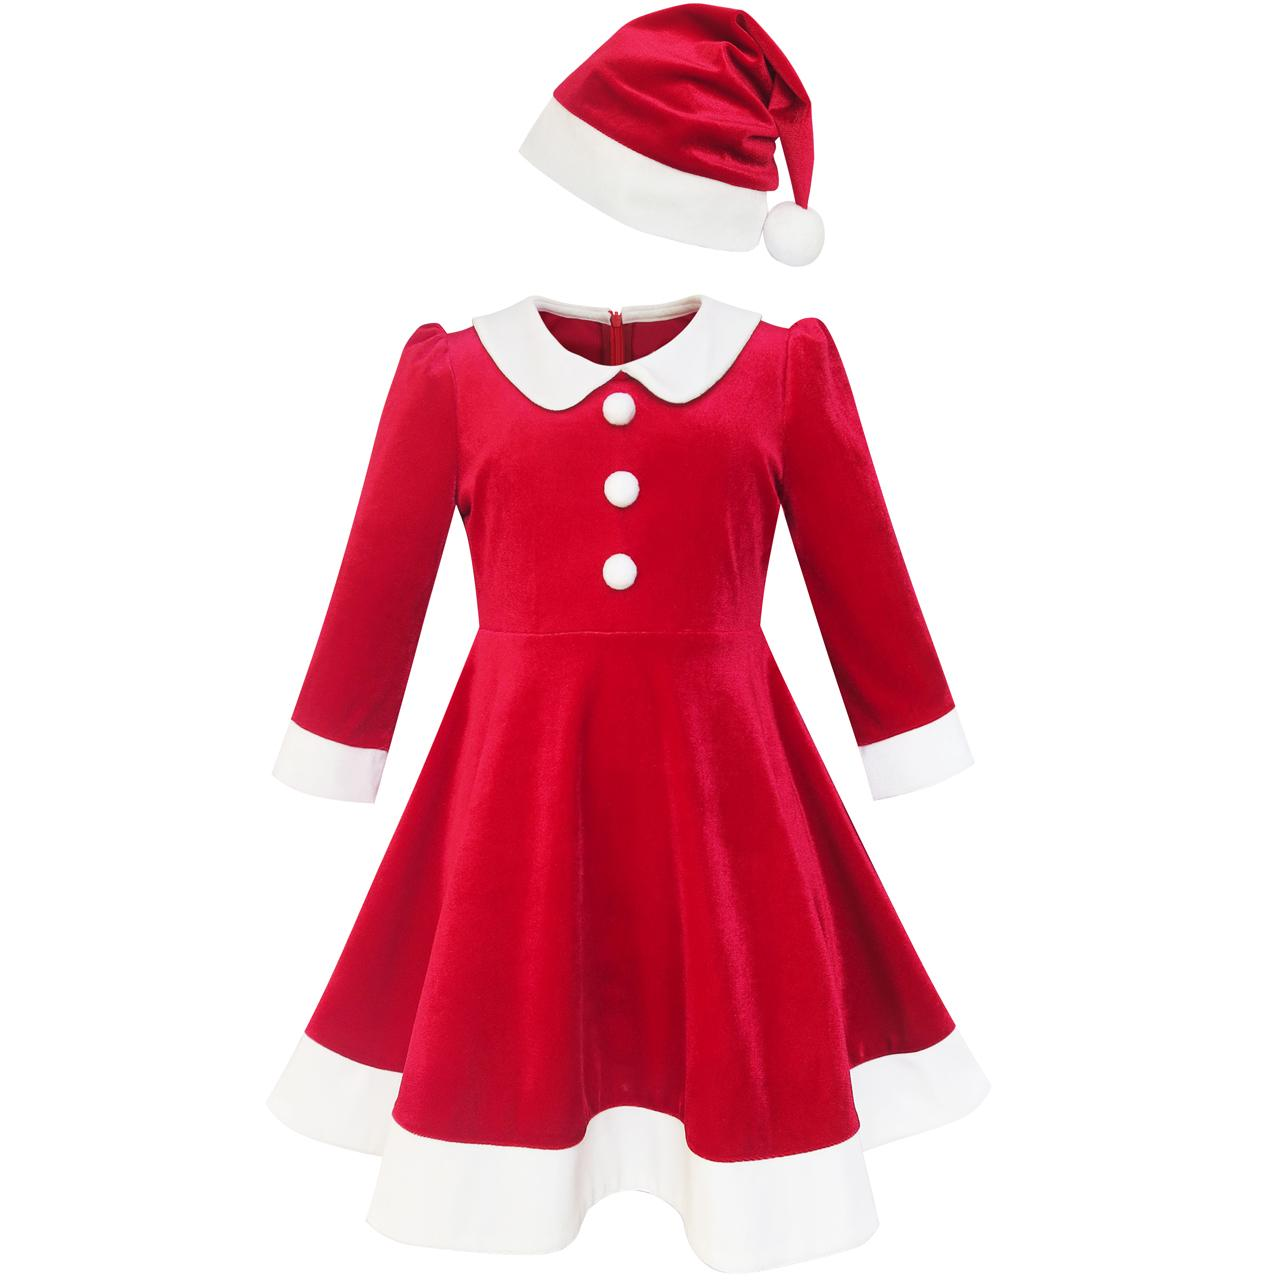 Sunny Fashion Girls Dress Christmas Hat Red Velvet Long Sleeve Holiday 2018 Summer Princess Wedding Party Dresses Size 4-14 christmas faux fur fitted velvet short party dress with hat